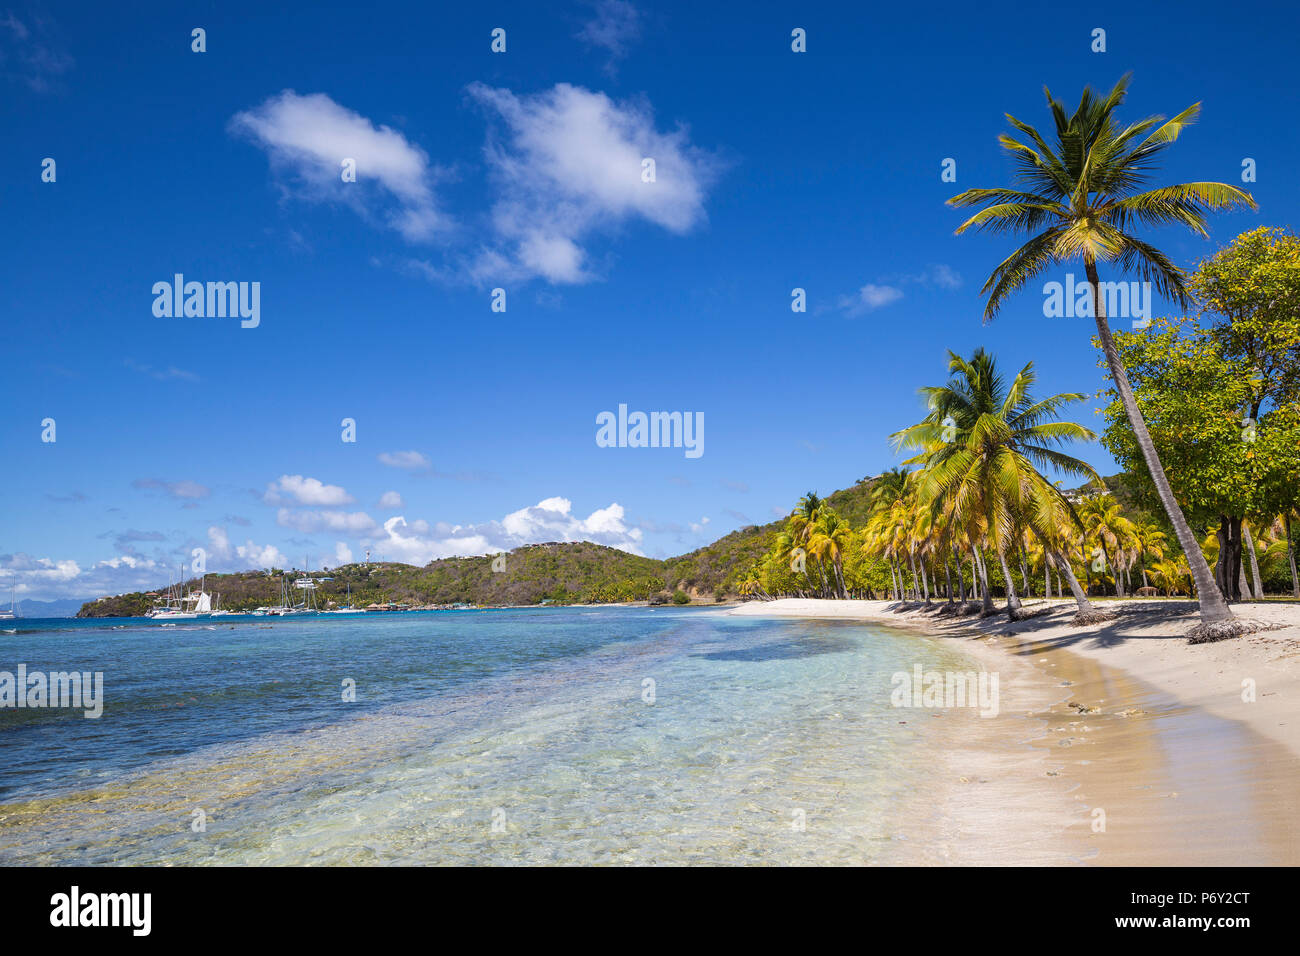 St Vincent et les Grenadines, Mustique, Brittania Bay Beach Photo Stock